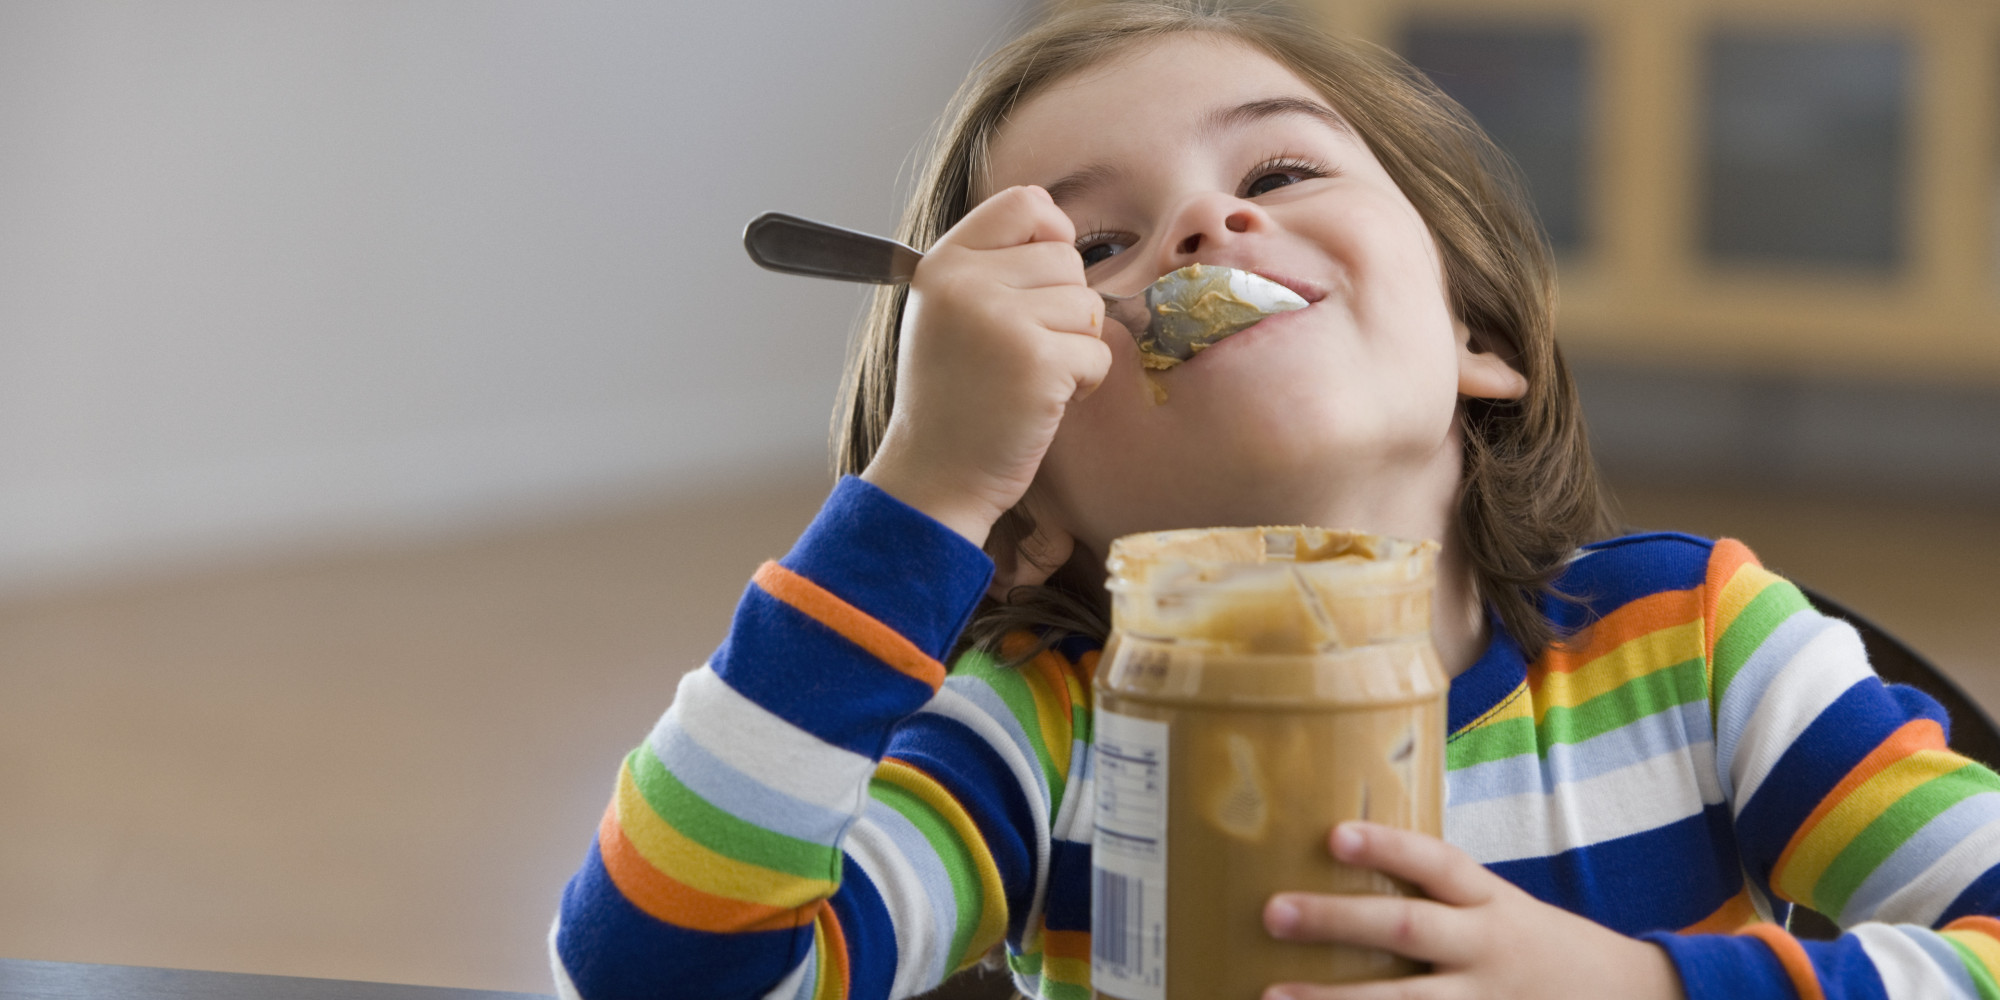 http://i.huffpost.com/gen/1435326/thumbs/o-KID-EATING-PEANUT-BUTTER-facebook.jpg